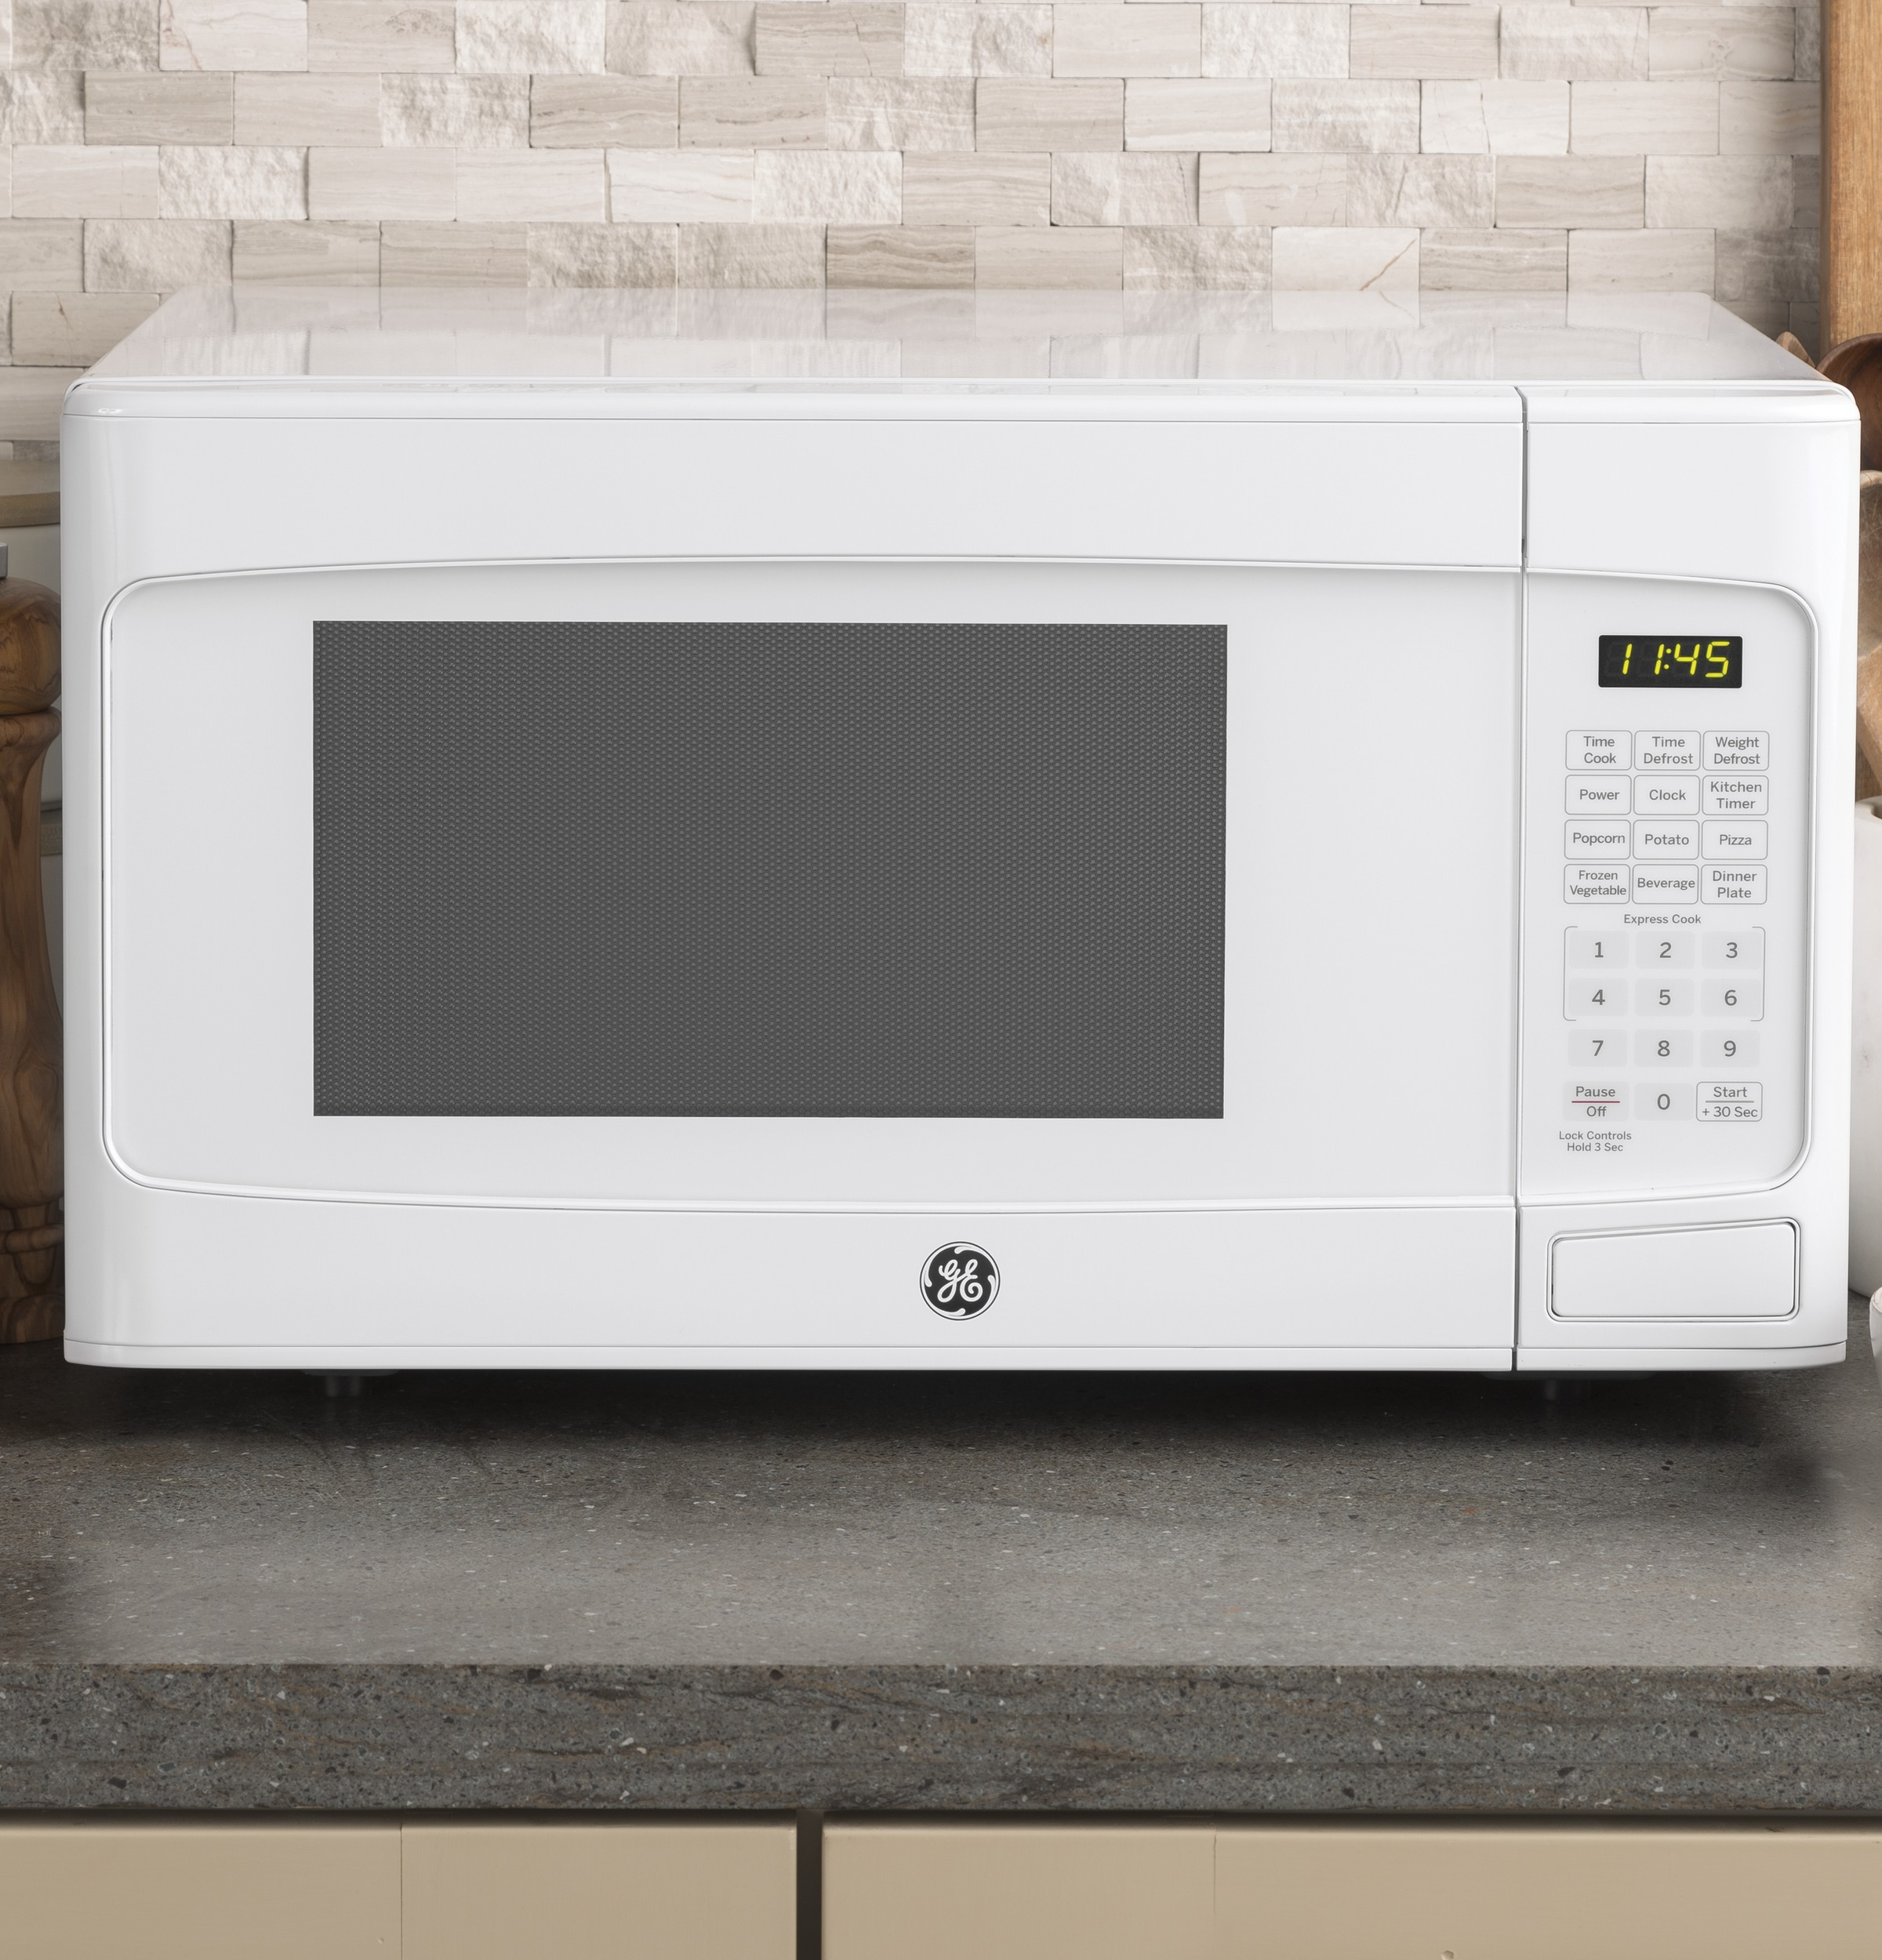 reviews product oven series convection ft ge gea microwave countertop specs image appliance requesttype caf name countertops cu dispatcher